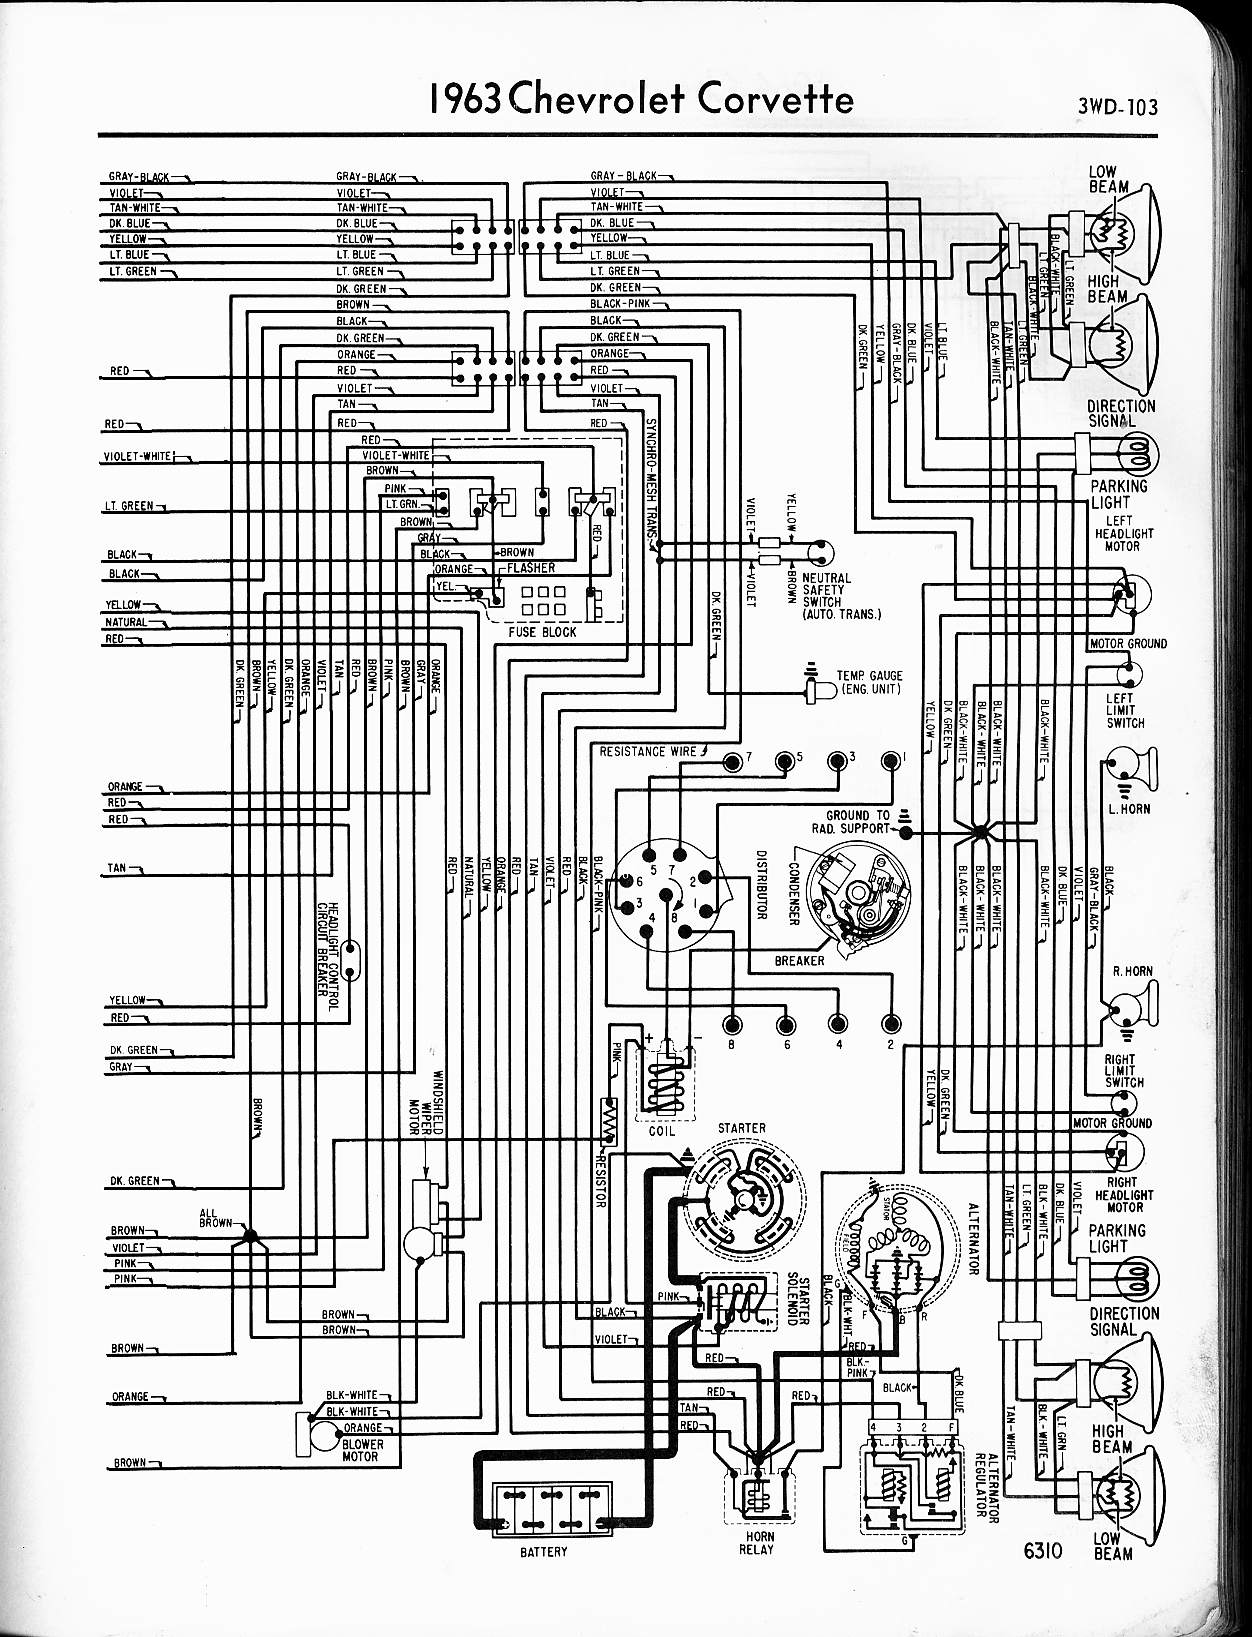 1963 corvair wiring diagram - wiring diagrams schematics 1963 corvair ignition diagram wiring schematic 1963 corvair wiring diagram